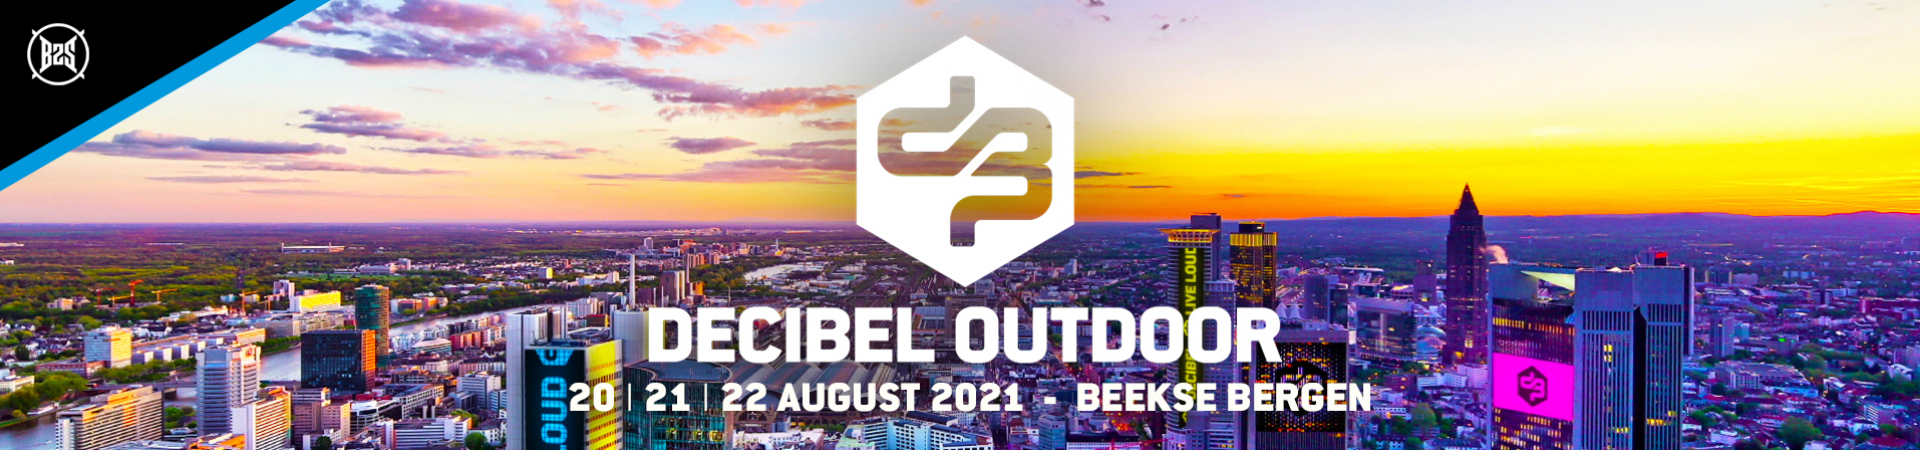 Decibel Outdoor banner